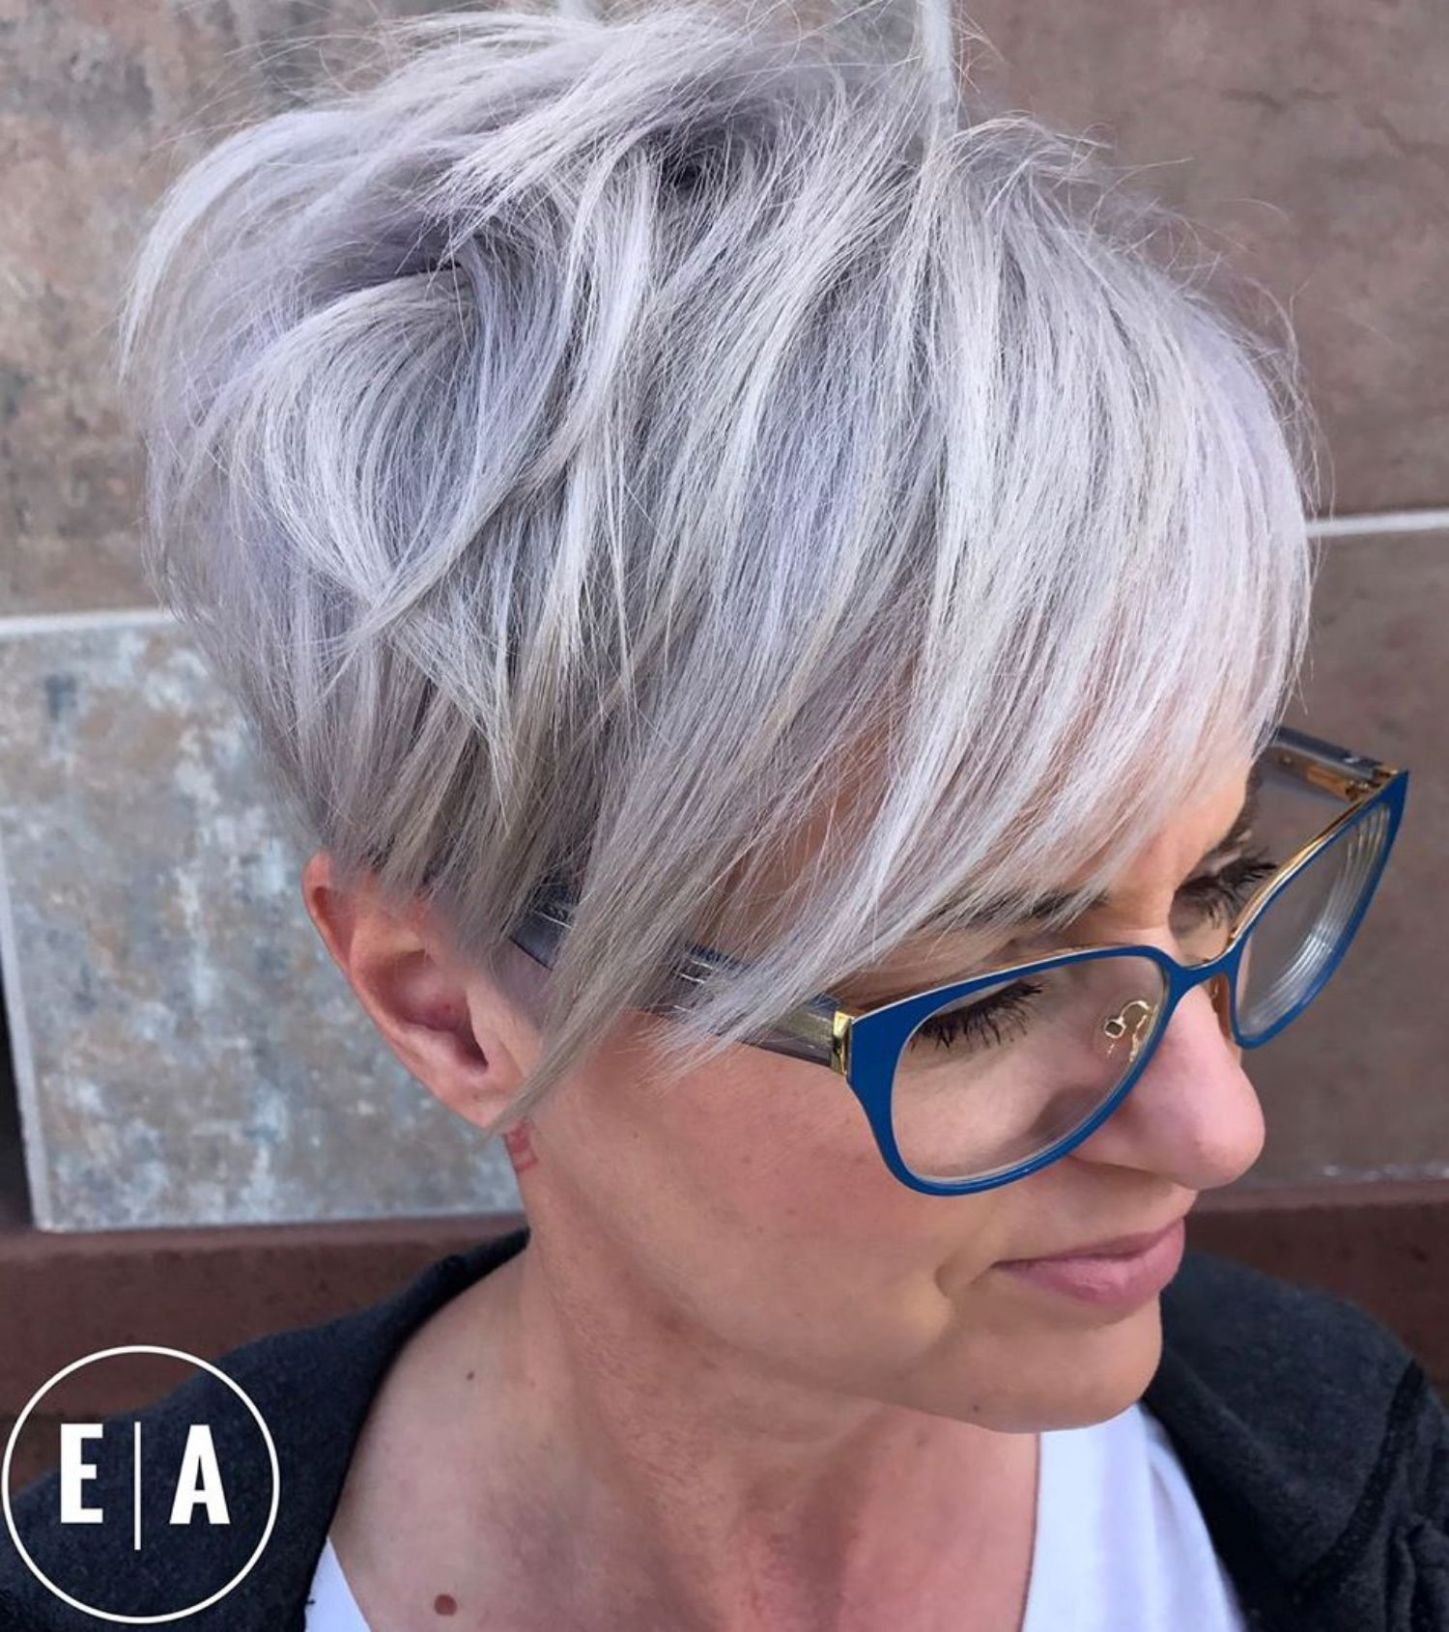 Pixie haircuts with bangs terrific tapers hair pinterest